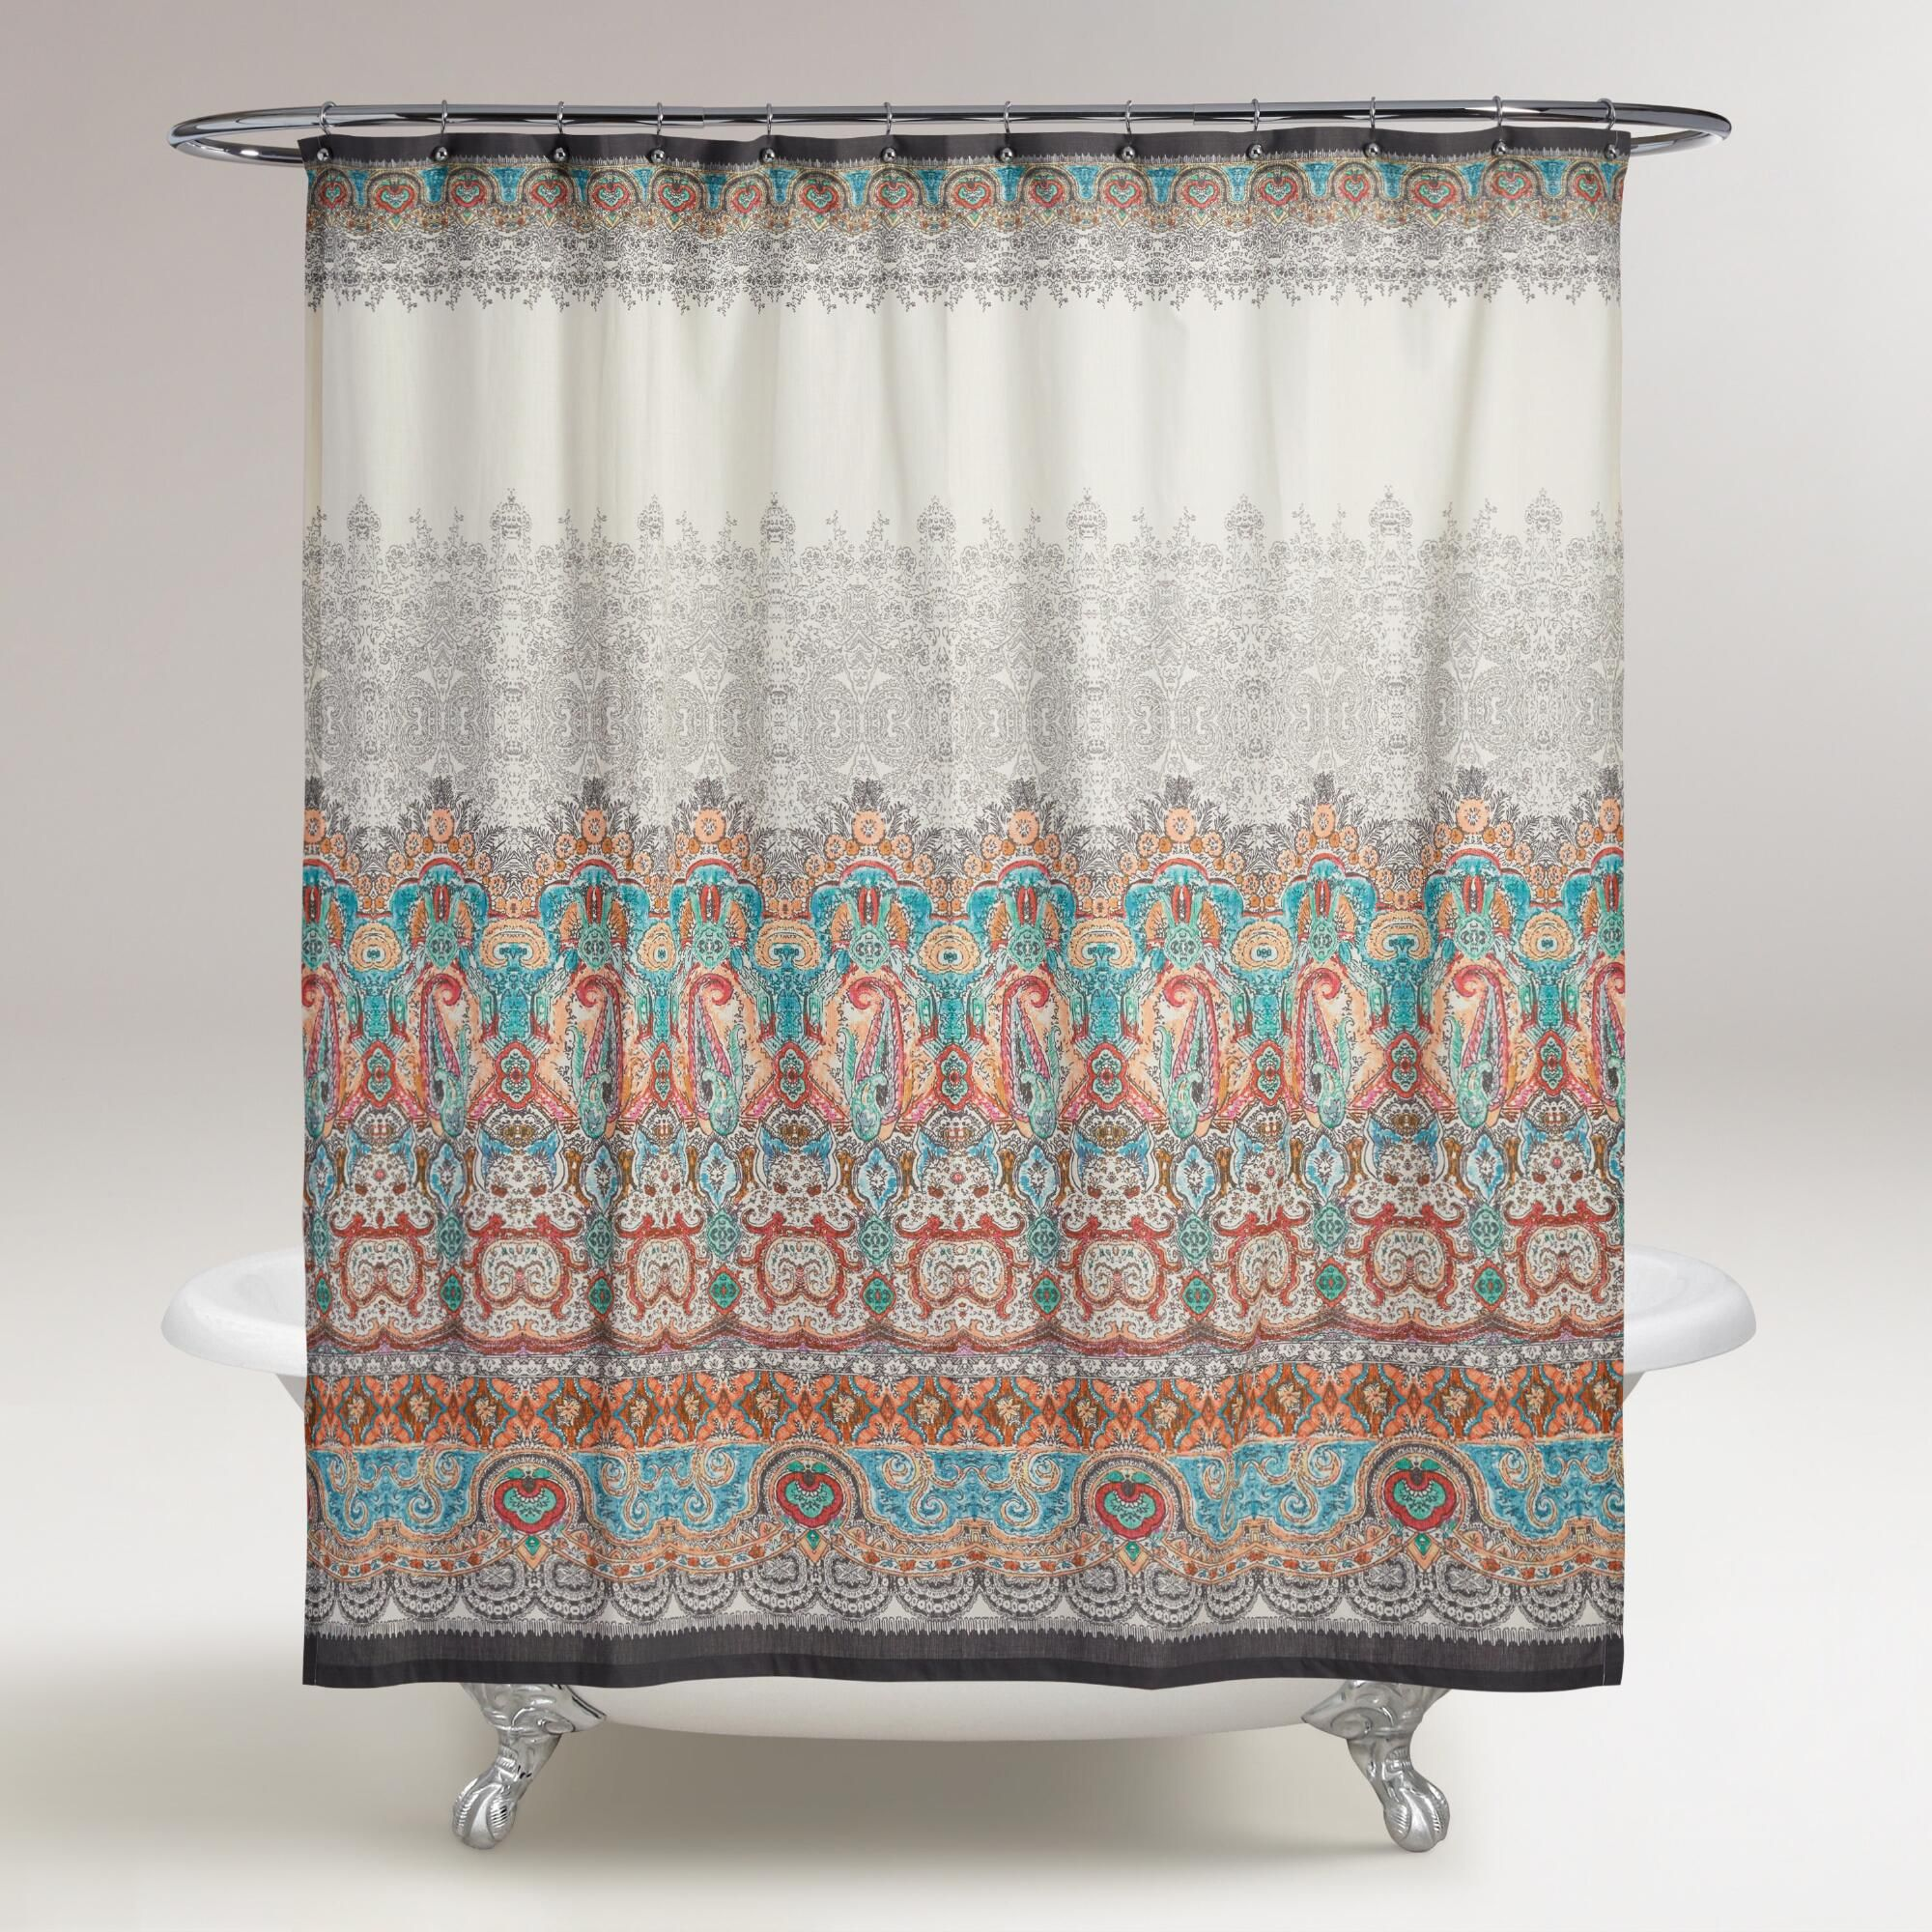 Our Shower Curtain Features A Delicate Multicolor Paisley Medallion Pattern With Hand Sketched Look